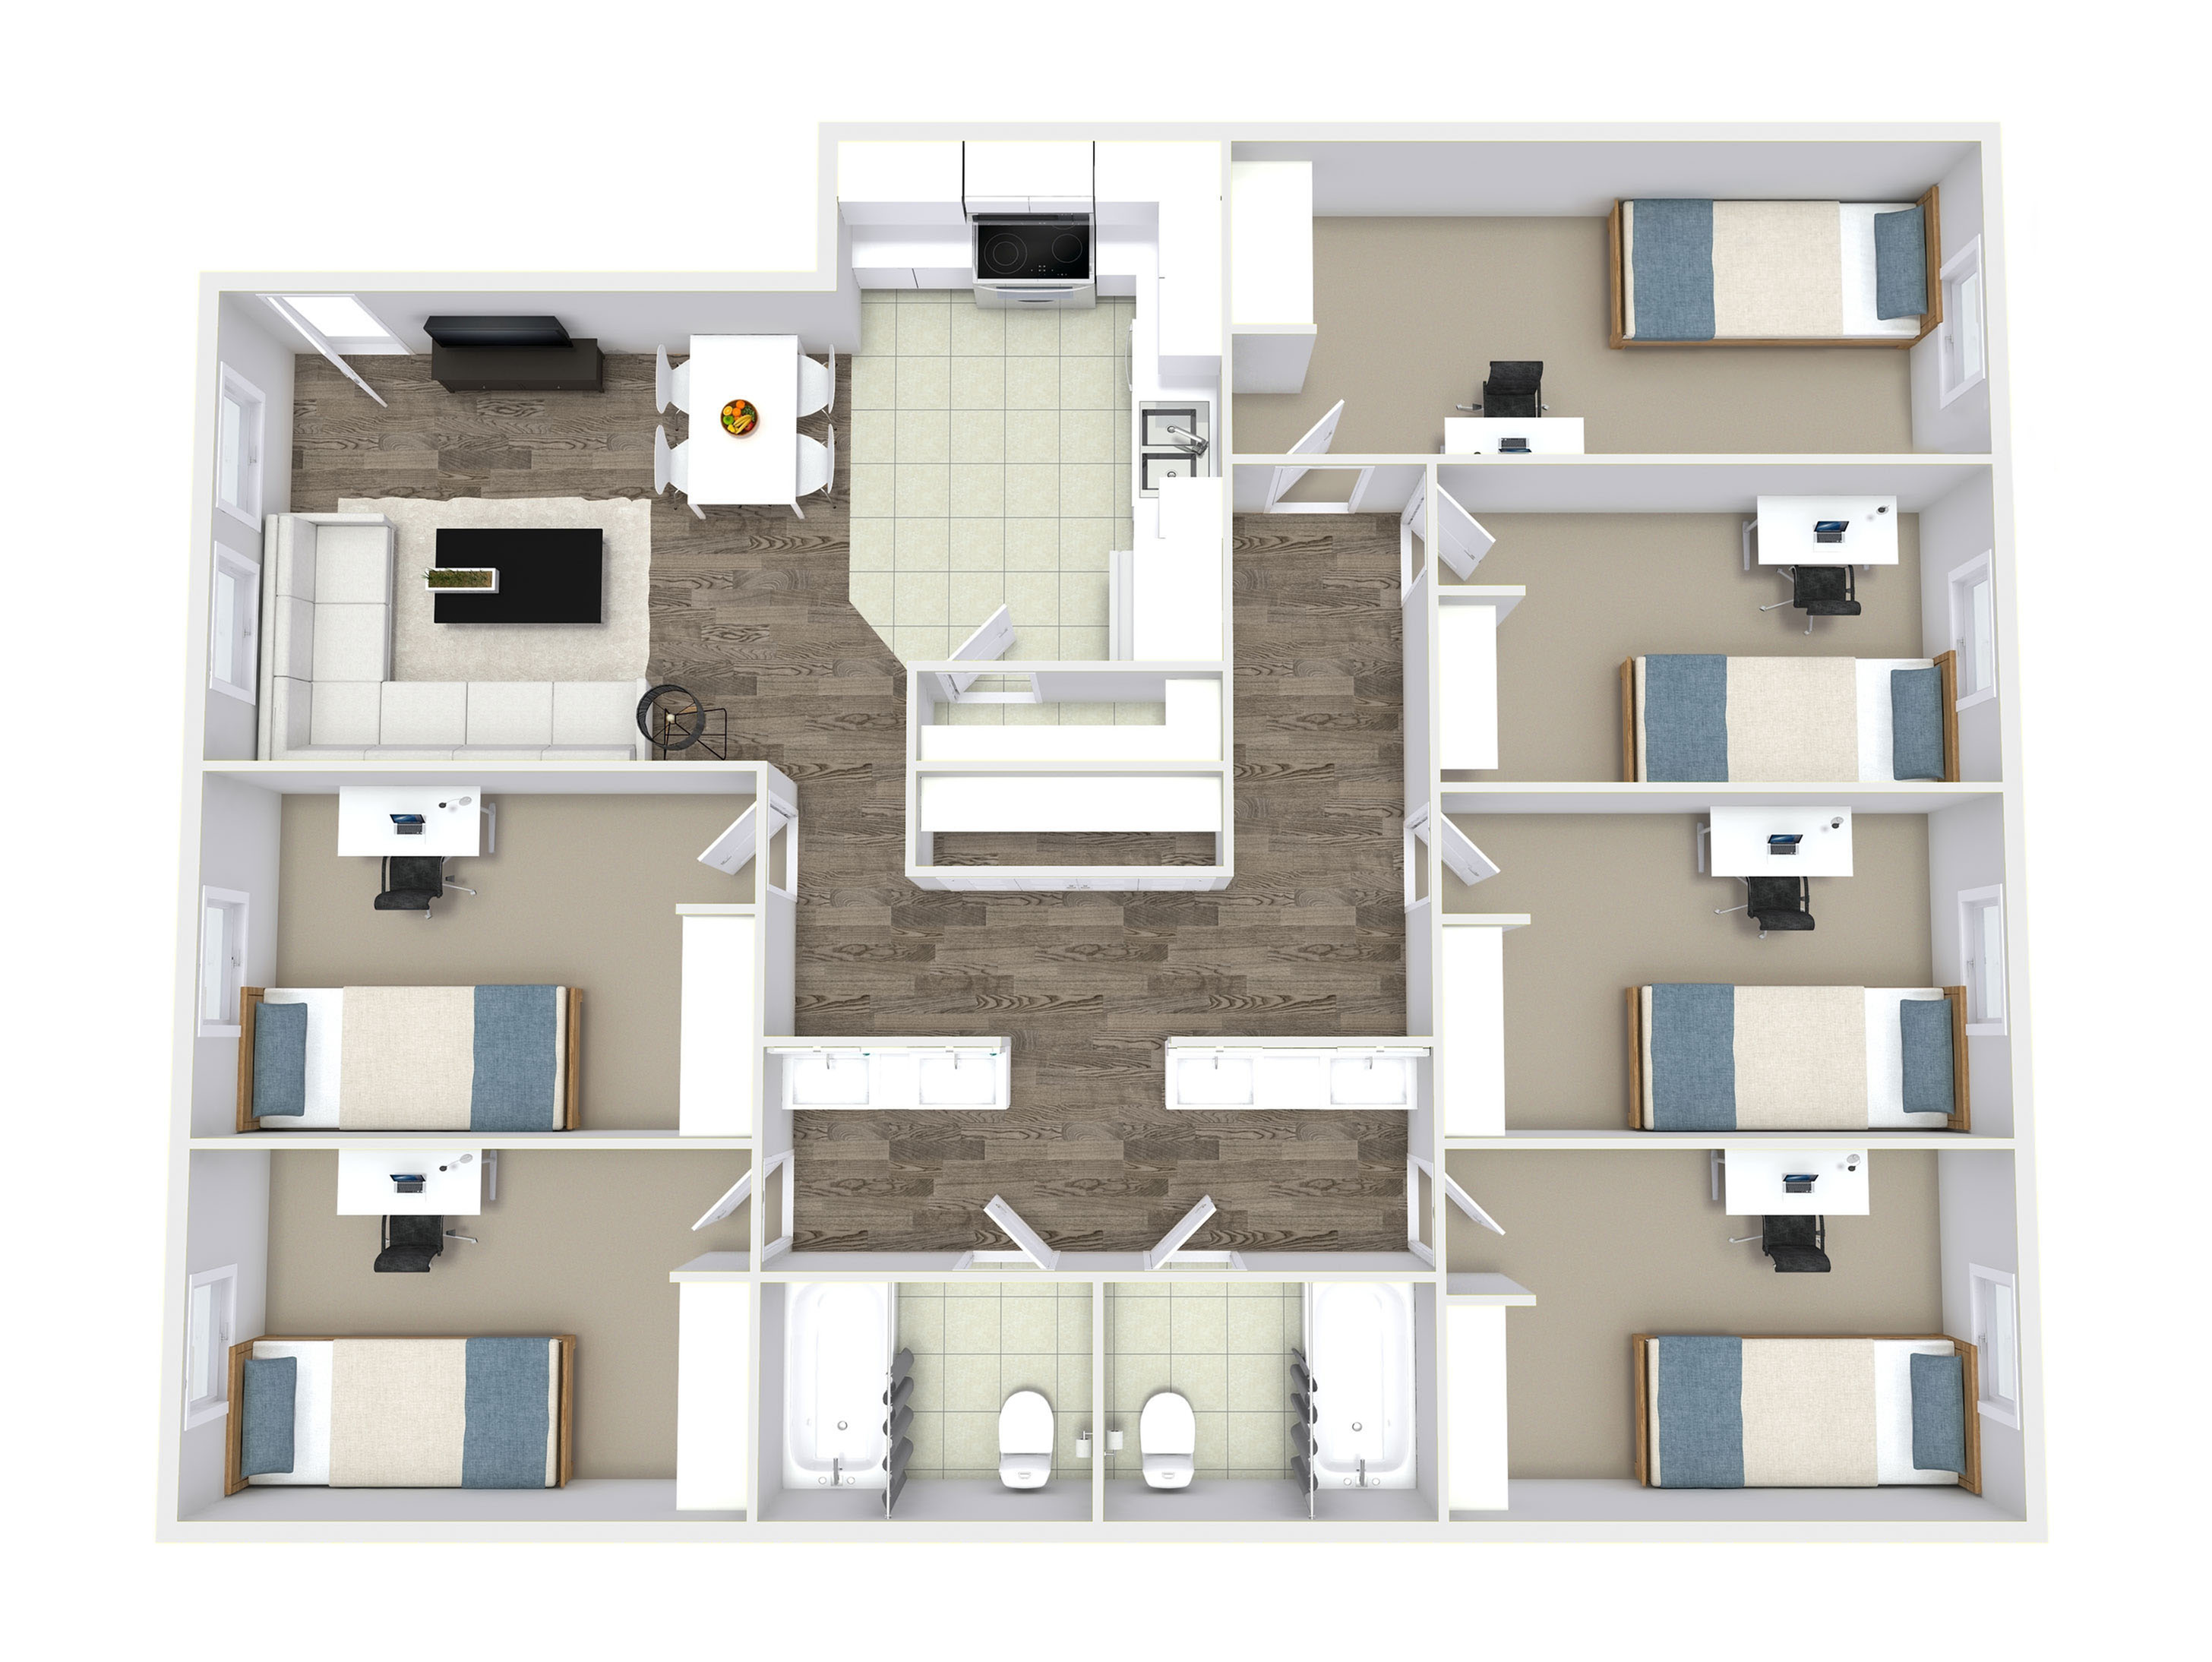 6 Bed - Private Rooms